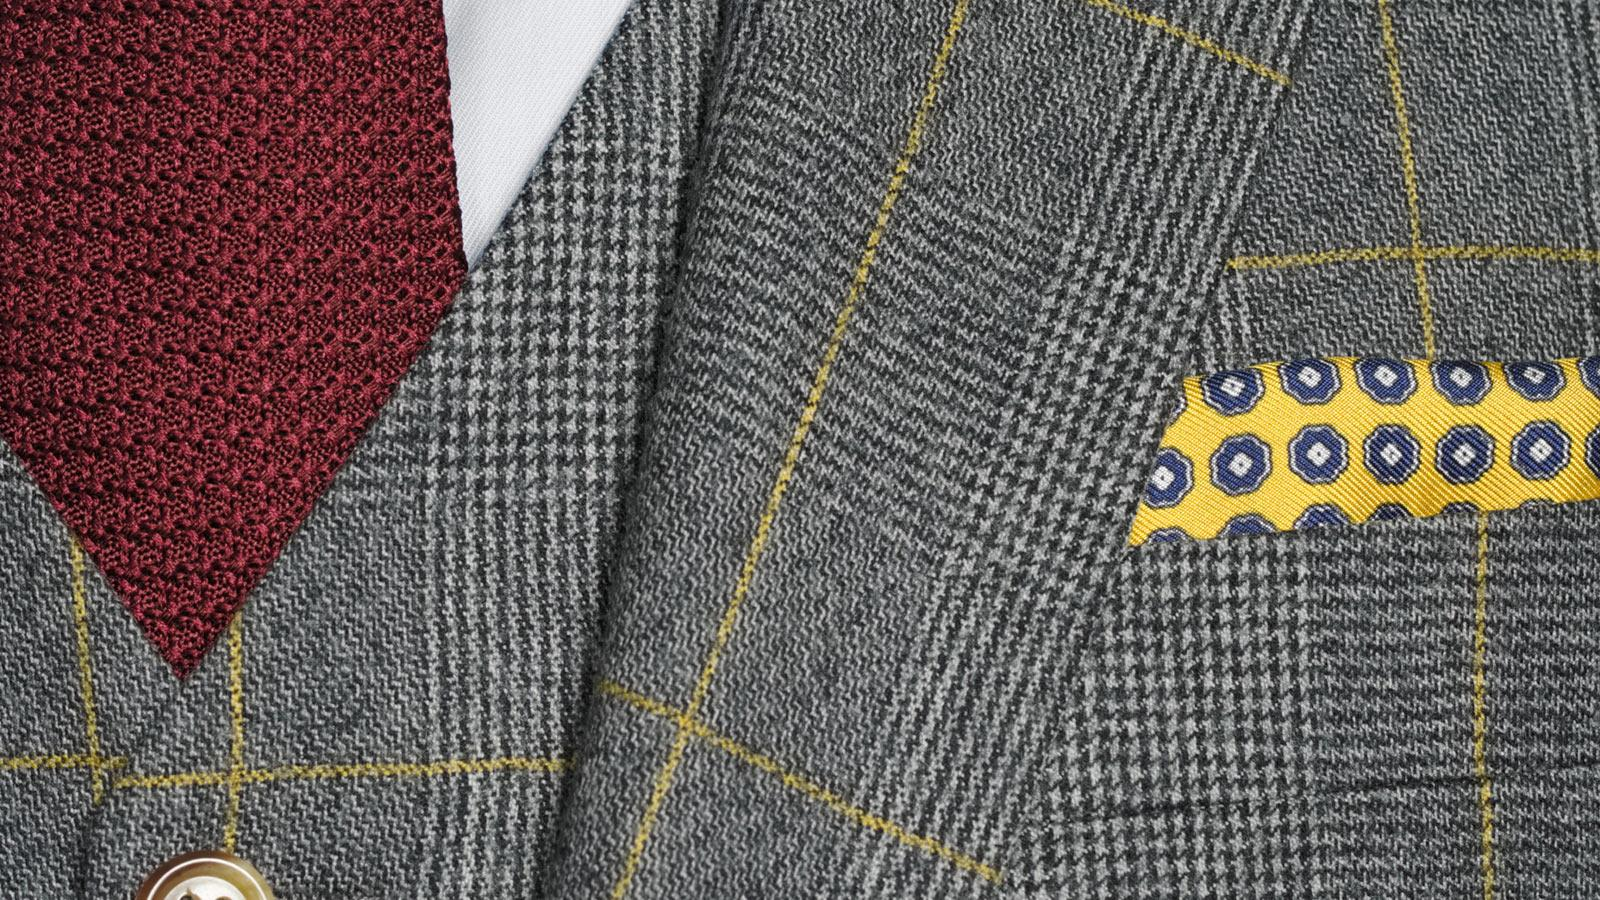 Grey Plaid With Yellow Overcheck 3 Piece Suit - slider image 1